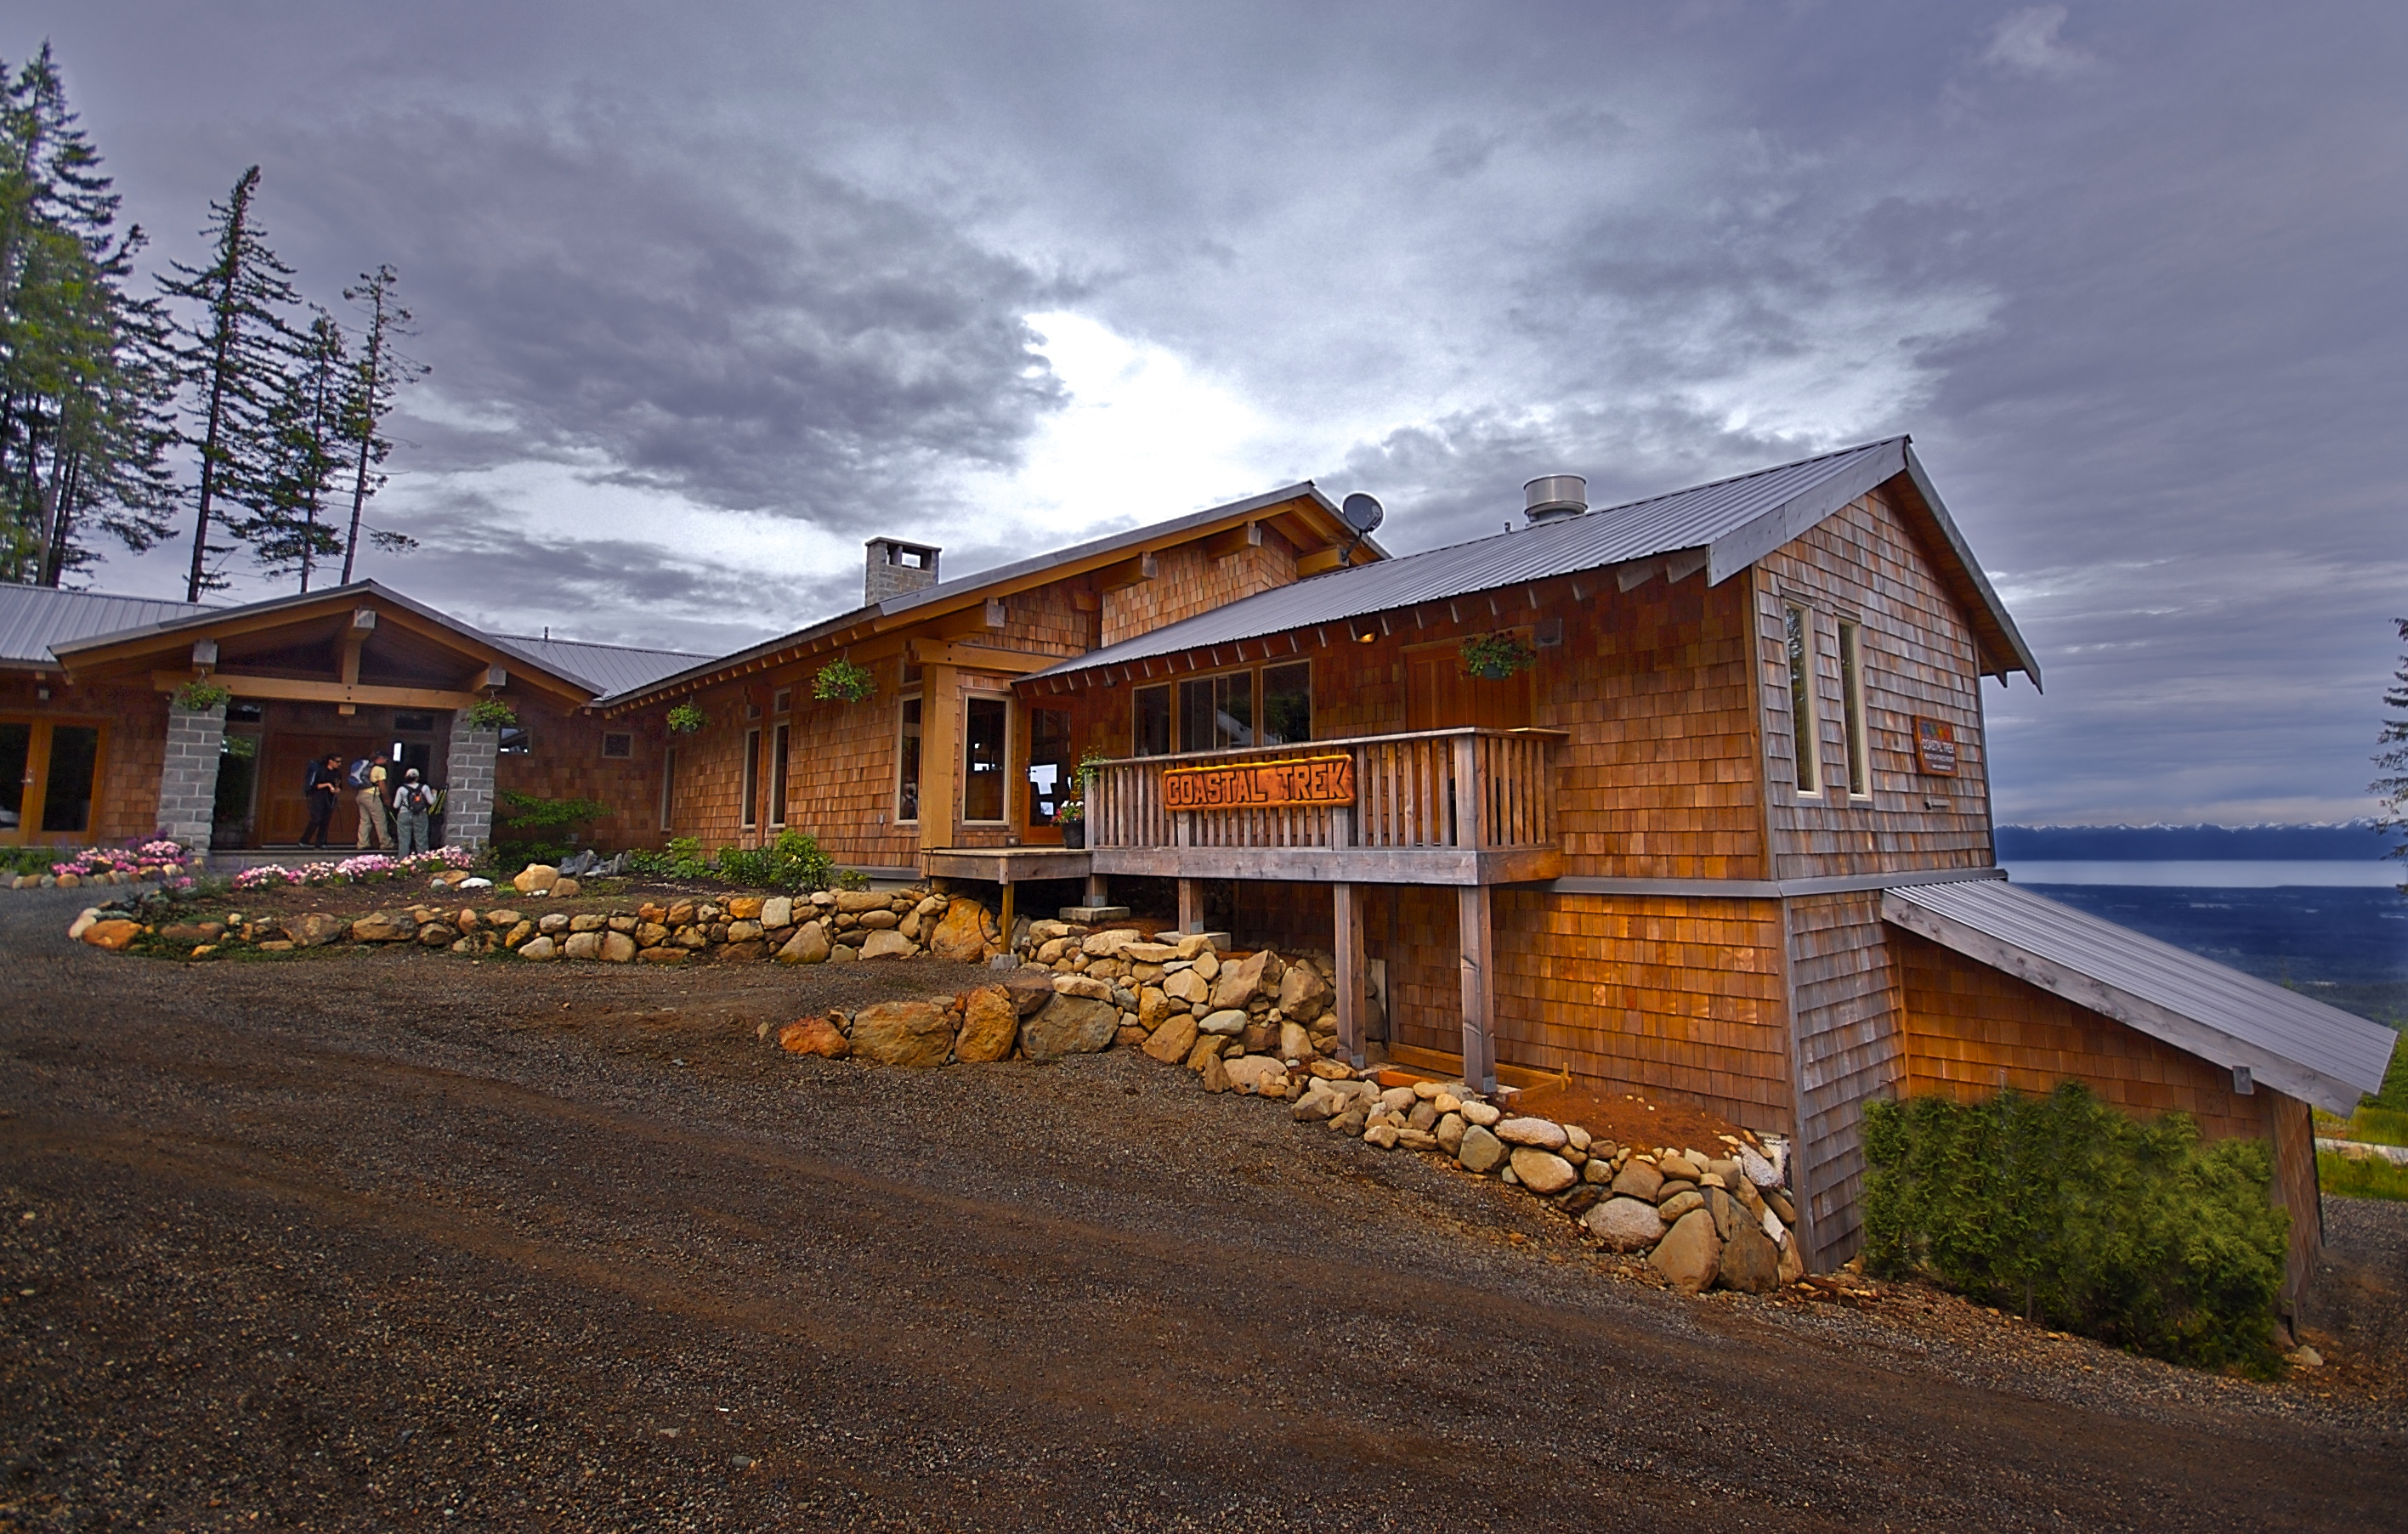 Ocean to Alpine Adventure Lodge